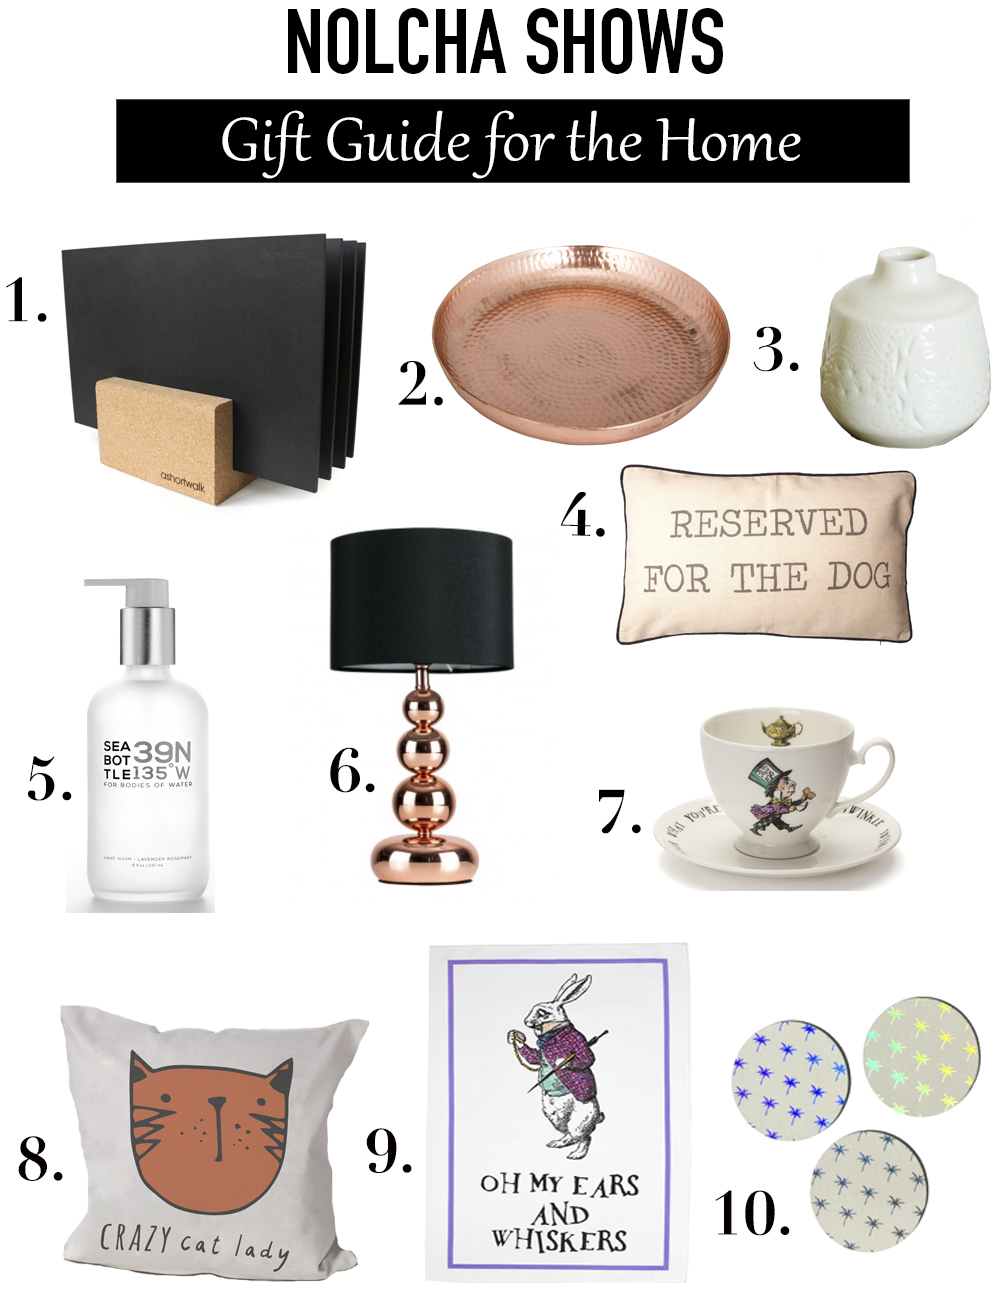 mmh-gift-guide-for-home